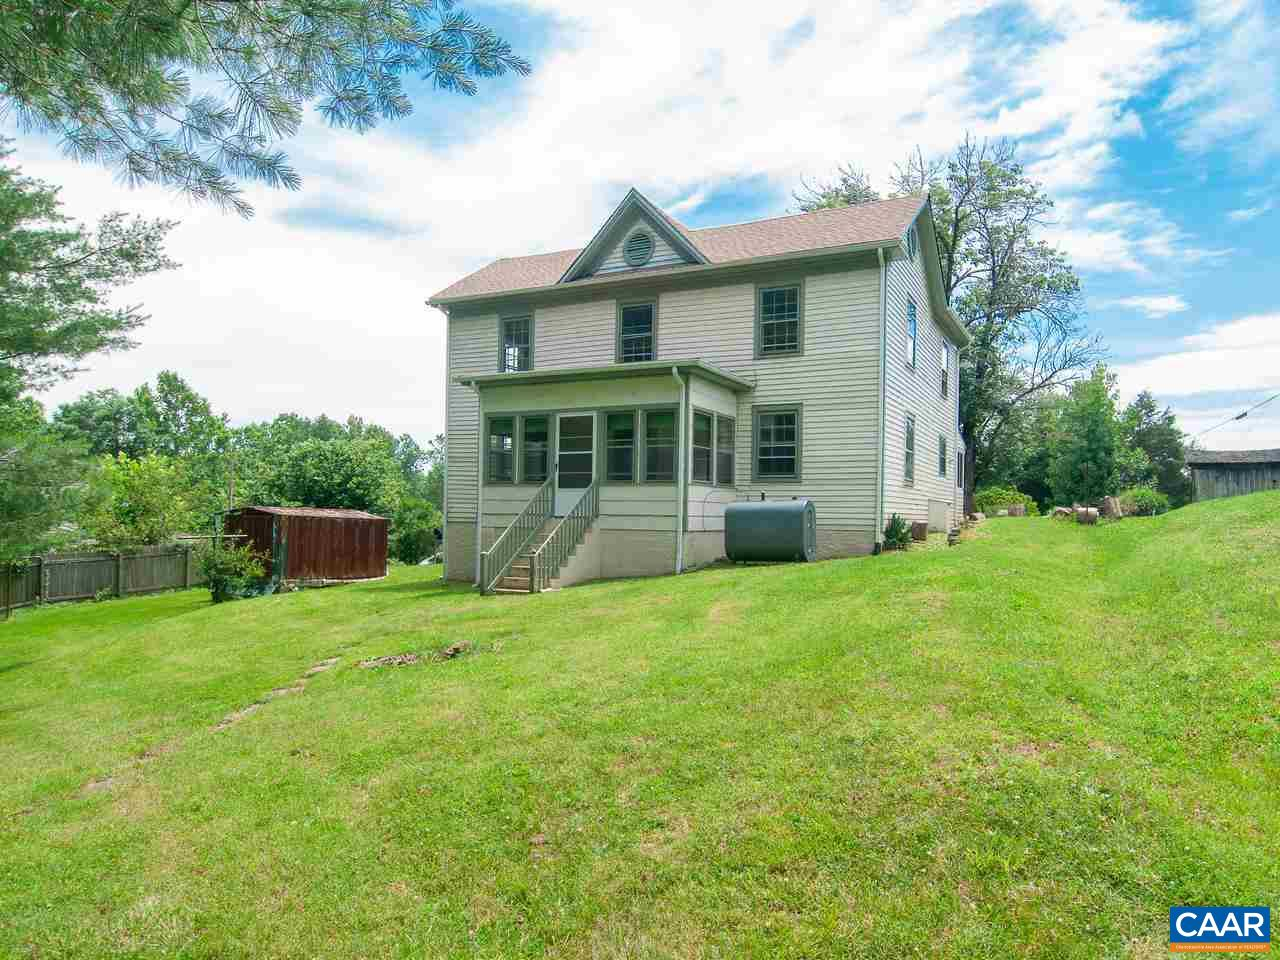 home for sale , MLS #599384, 6138 Rockfish River Rd